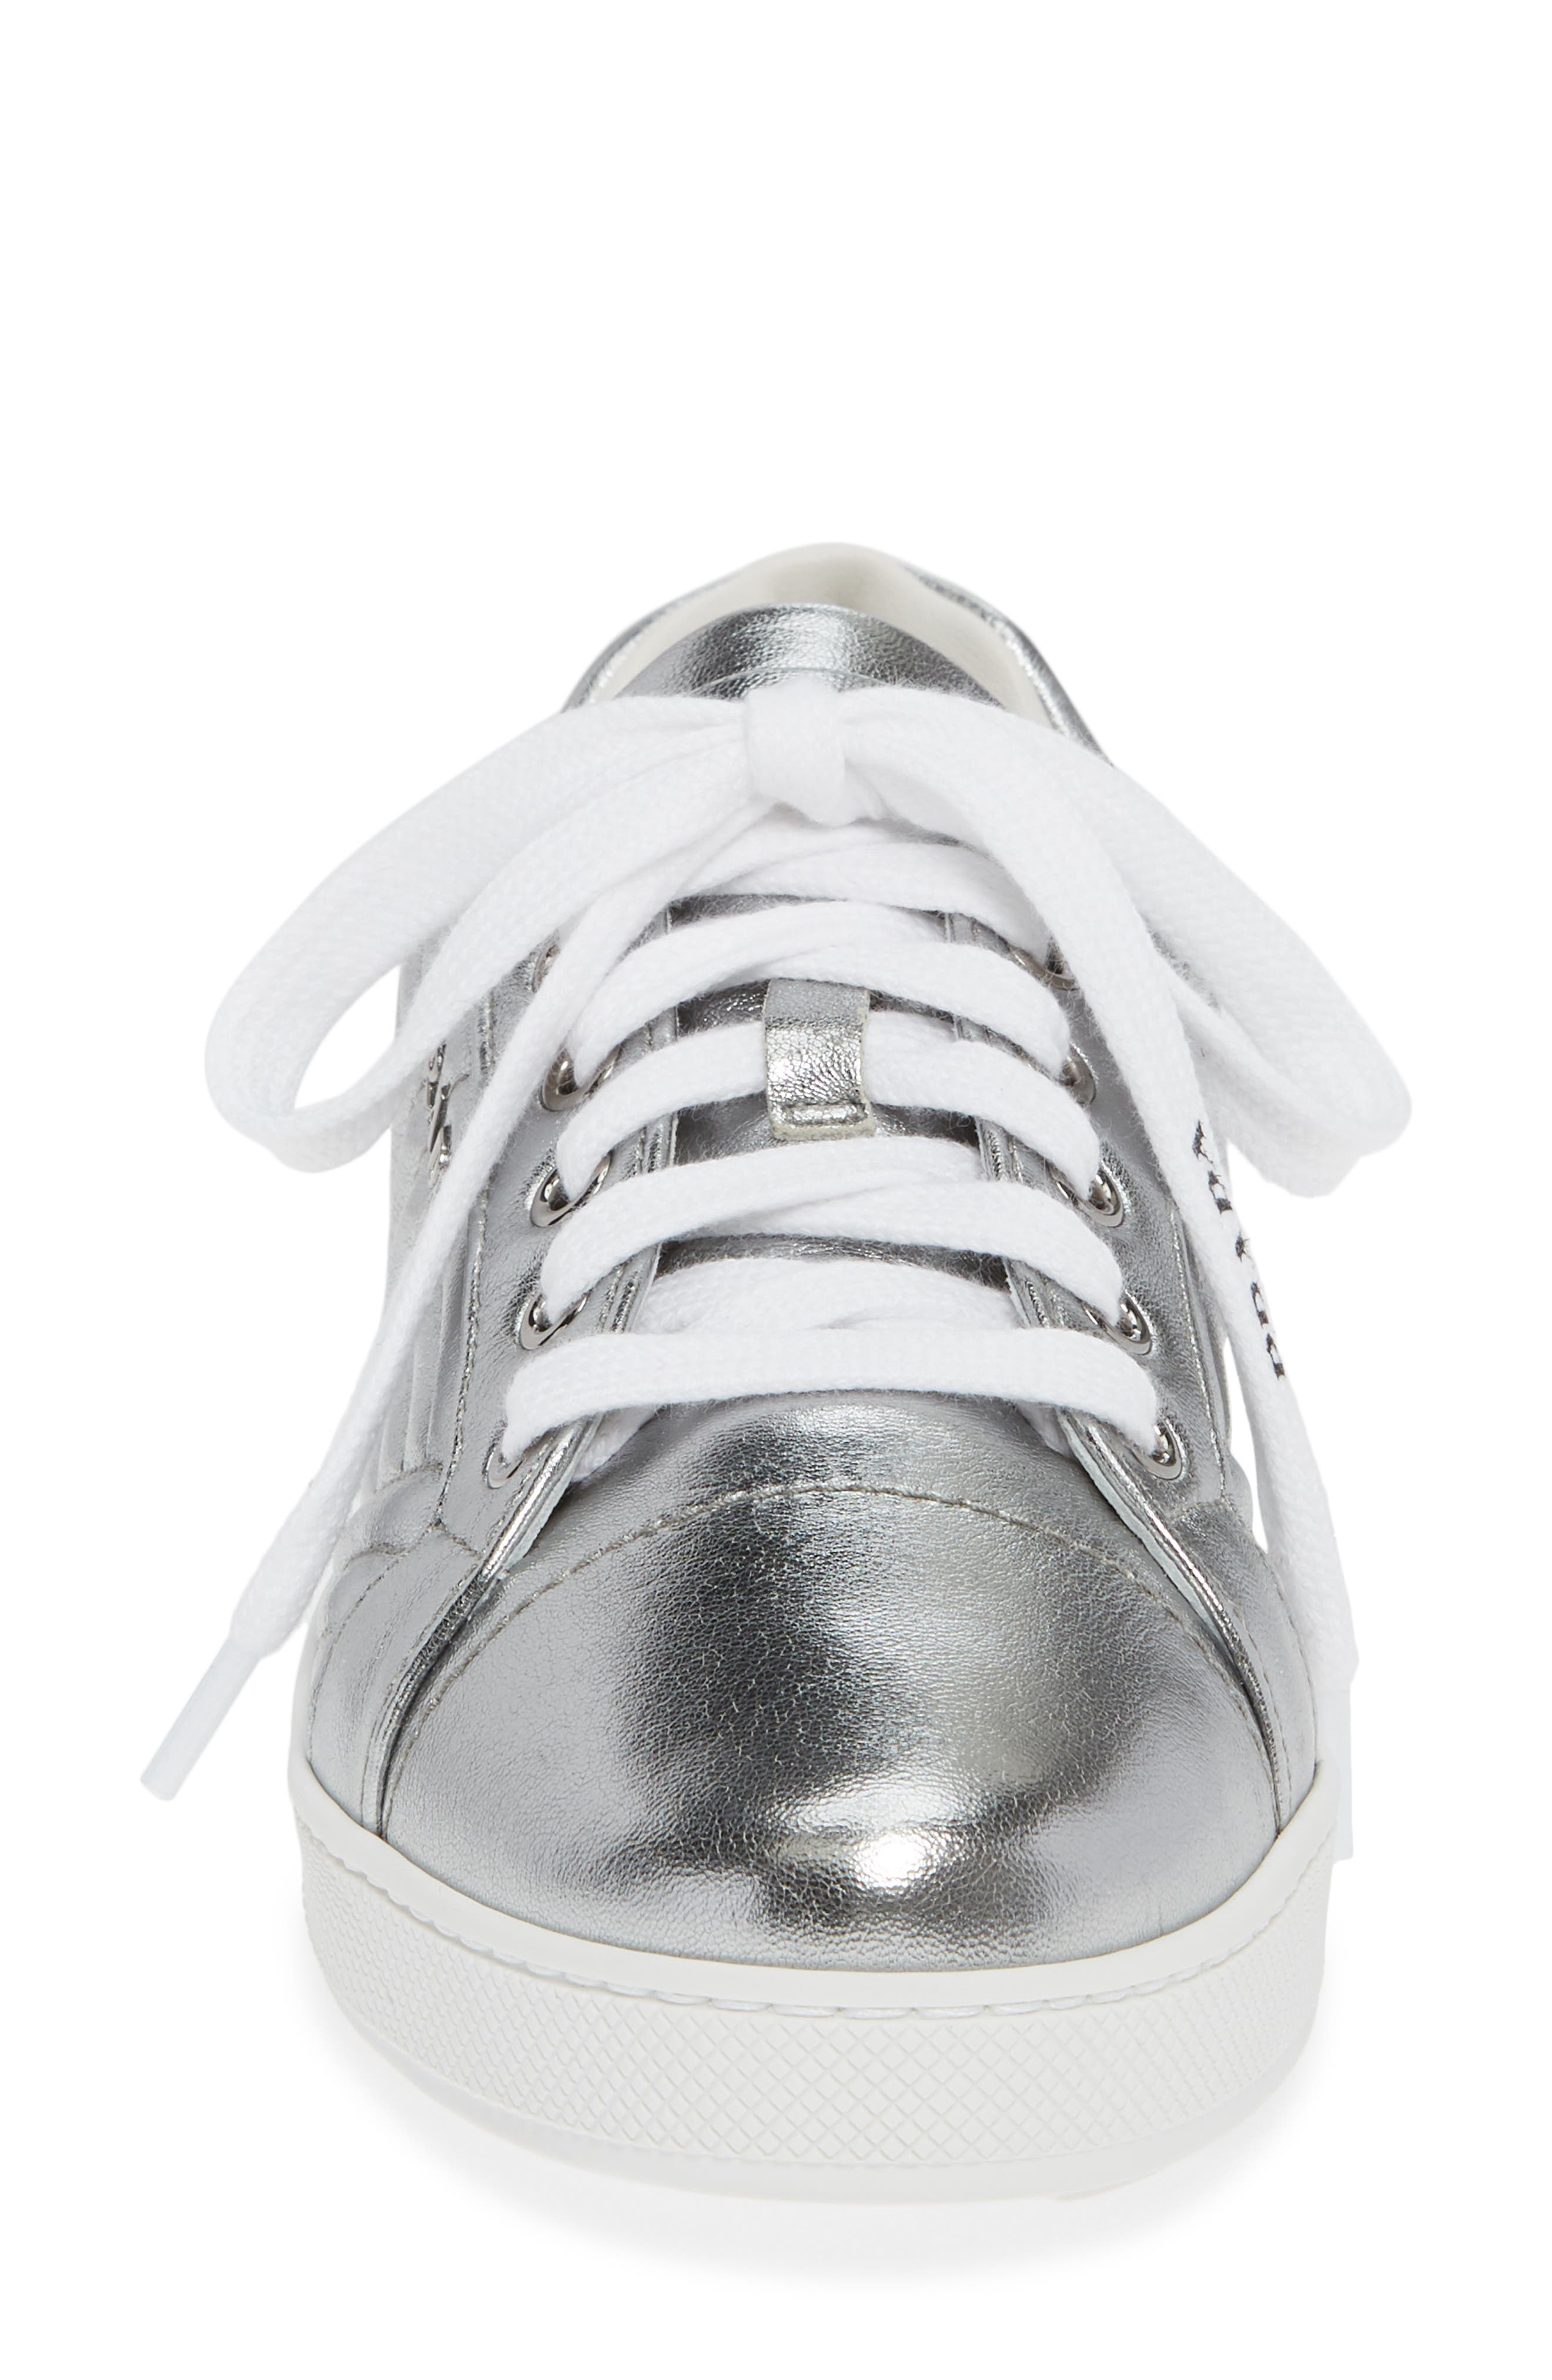 Quilted Leather Sneaker,                             Alternate thumbnail 6, color,                             Silver